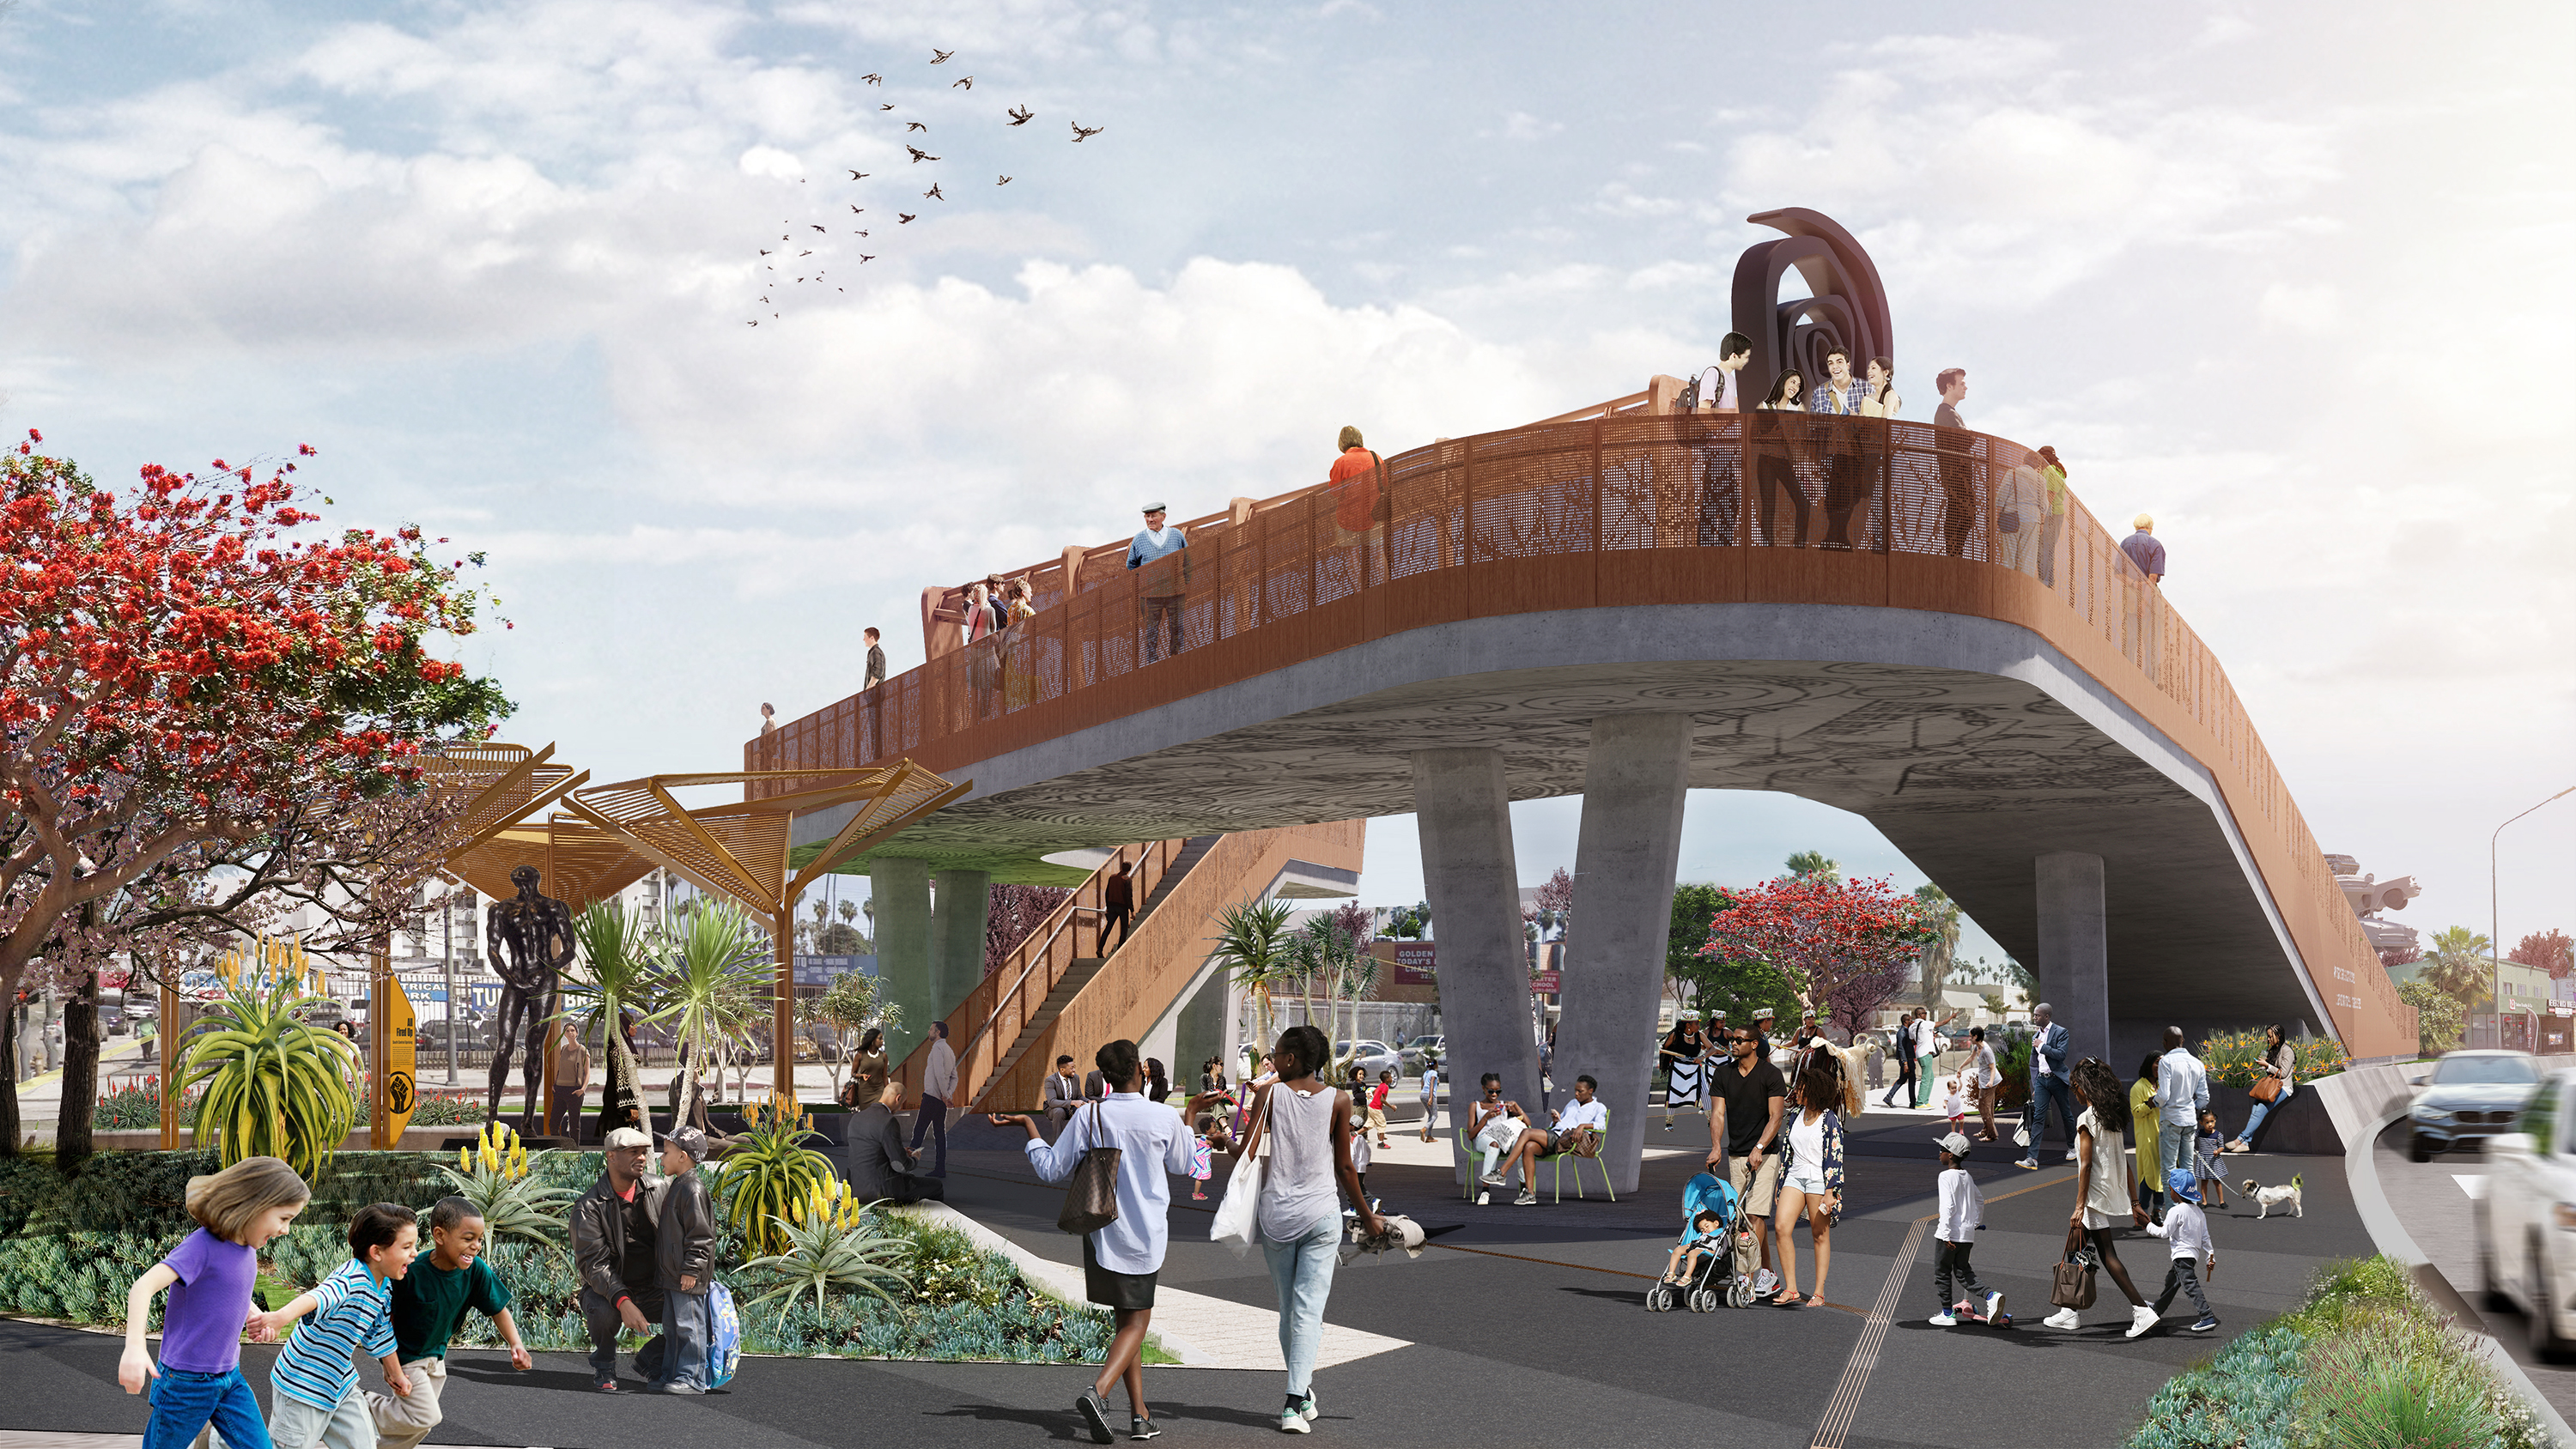 A rendering of an elevated bridge above a park-like setting with landscaping and trees and people walking on the sidewalk.